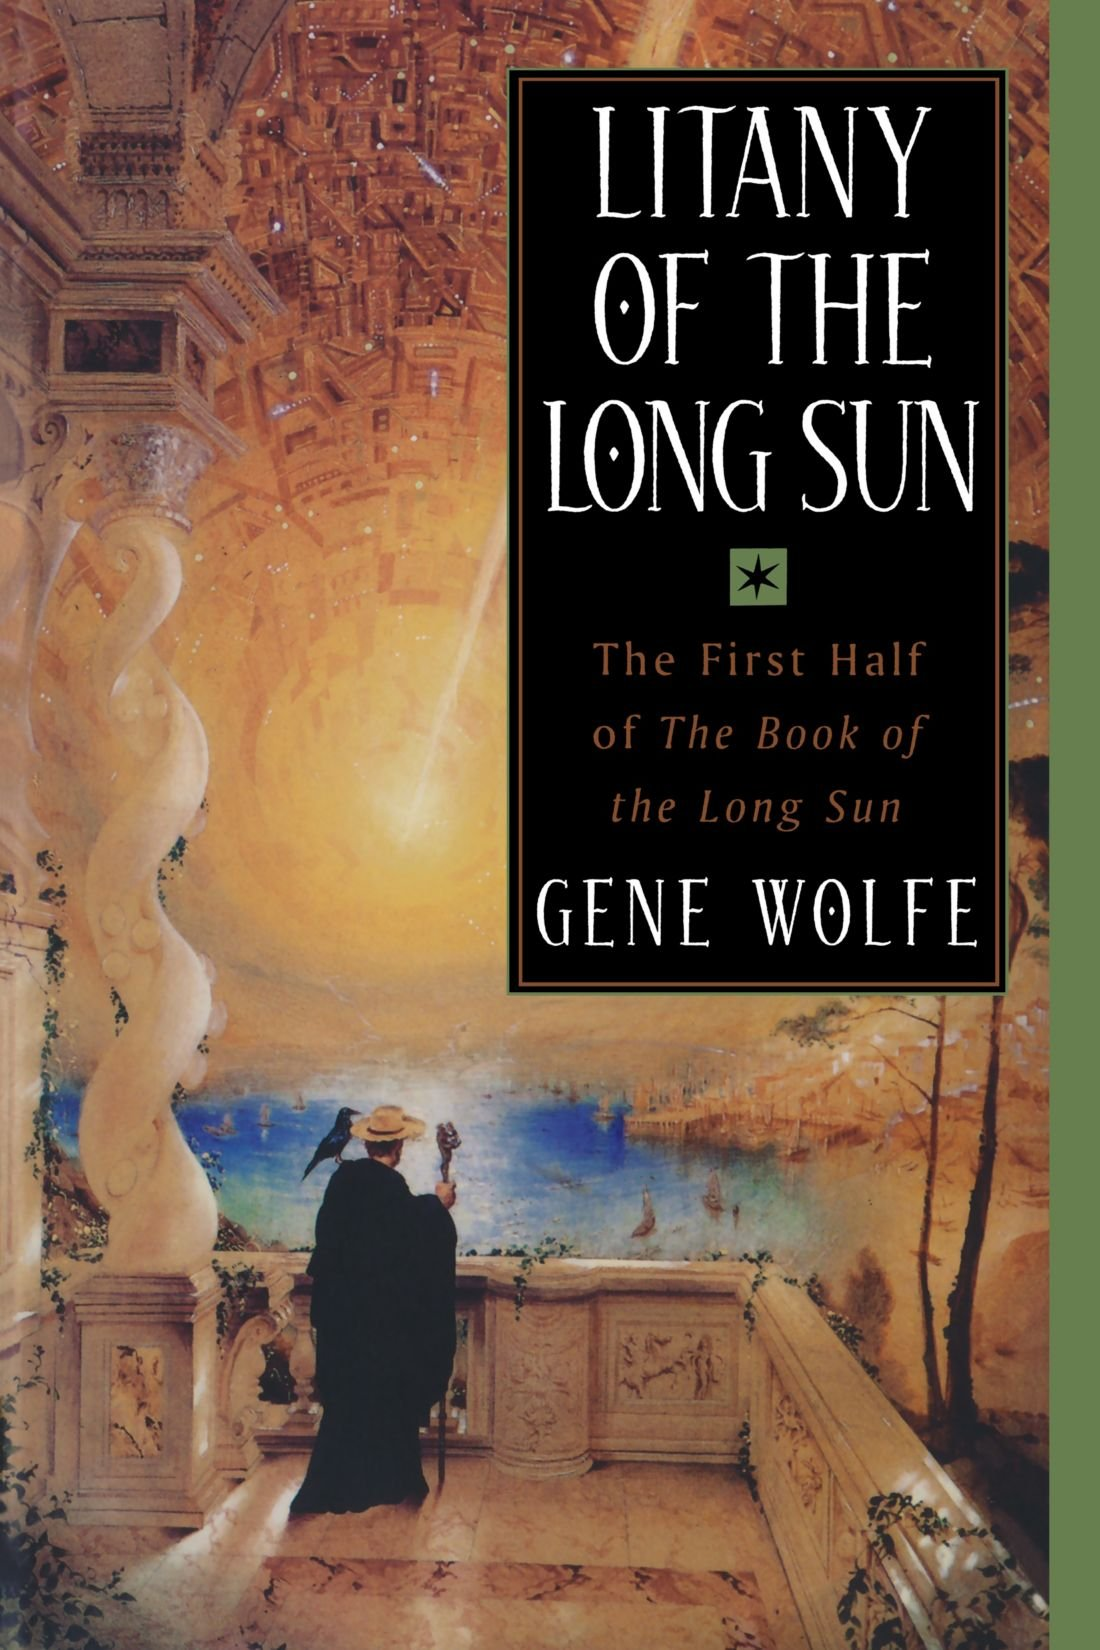 Image result for litany of the long sun